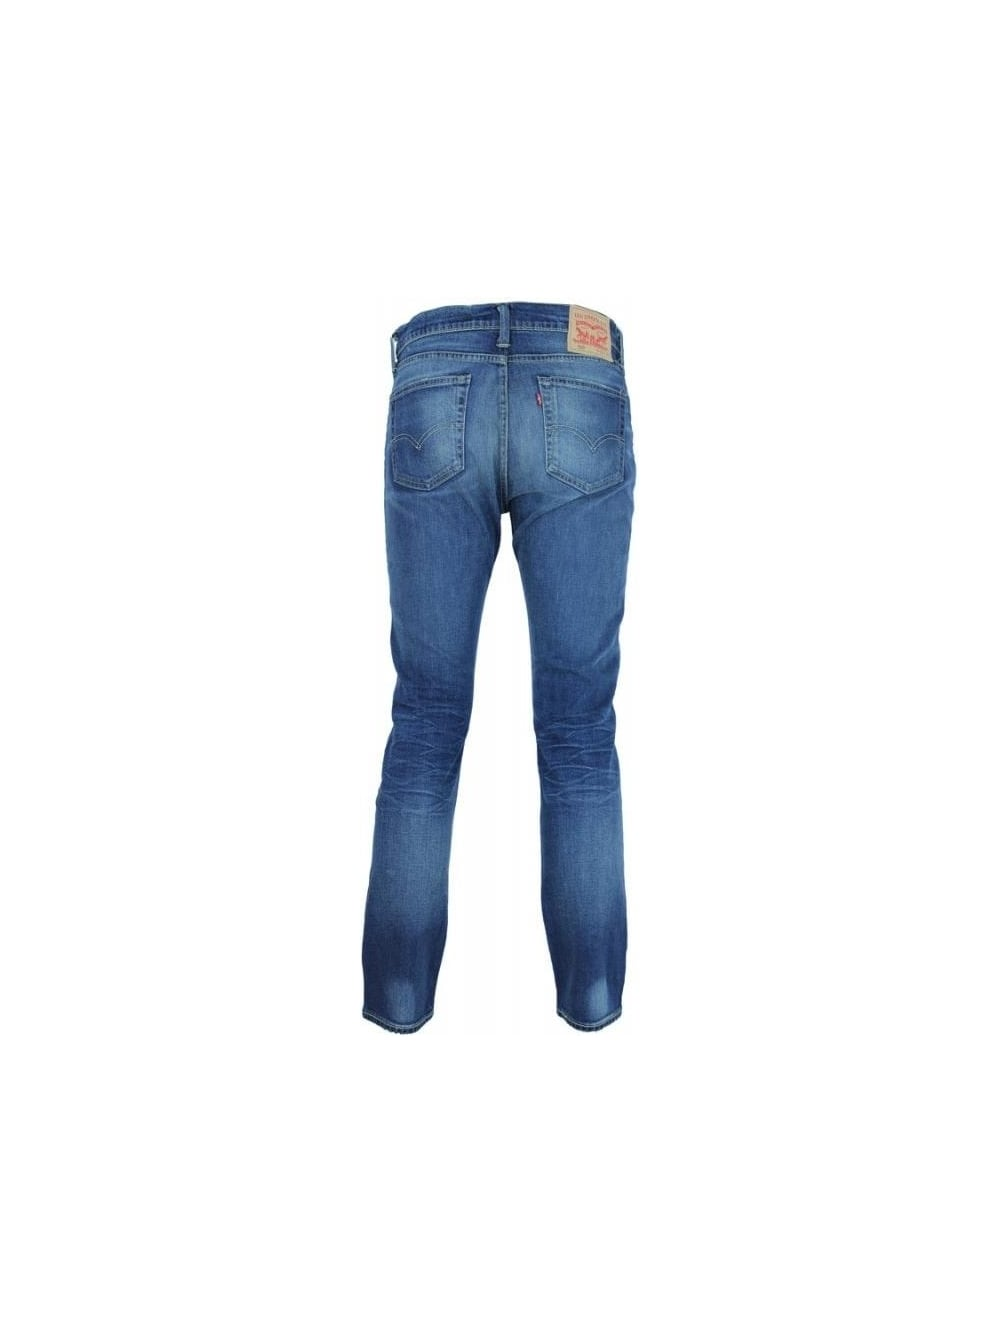 53f73f439761 Levis Red Tab 510 Skinny Fit Jeans in Blue Canyon - Northern Threads